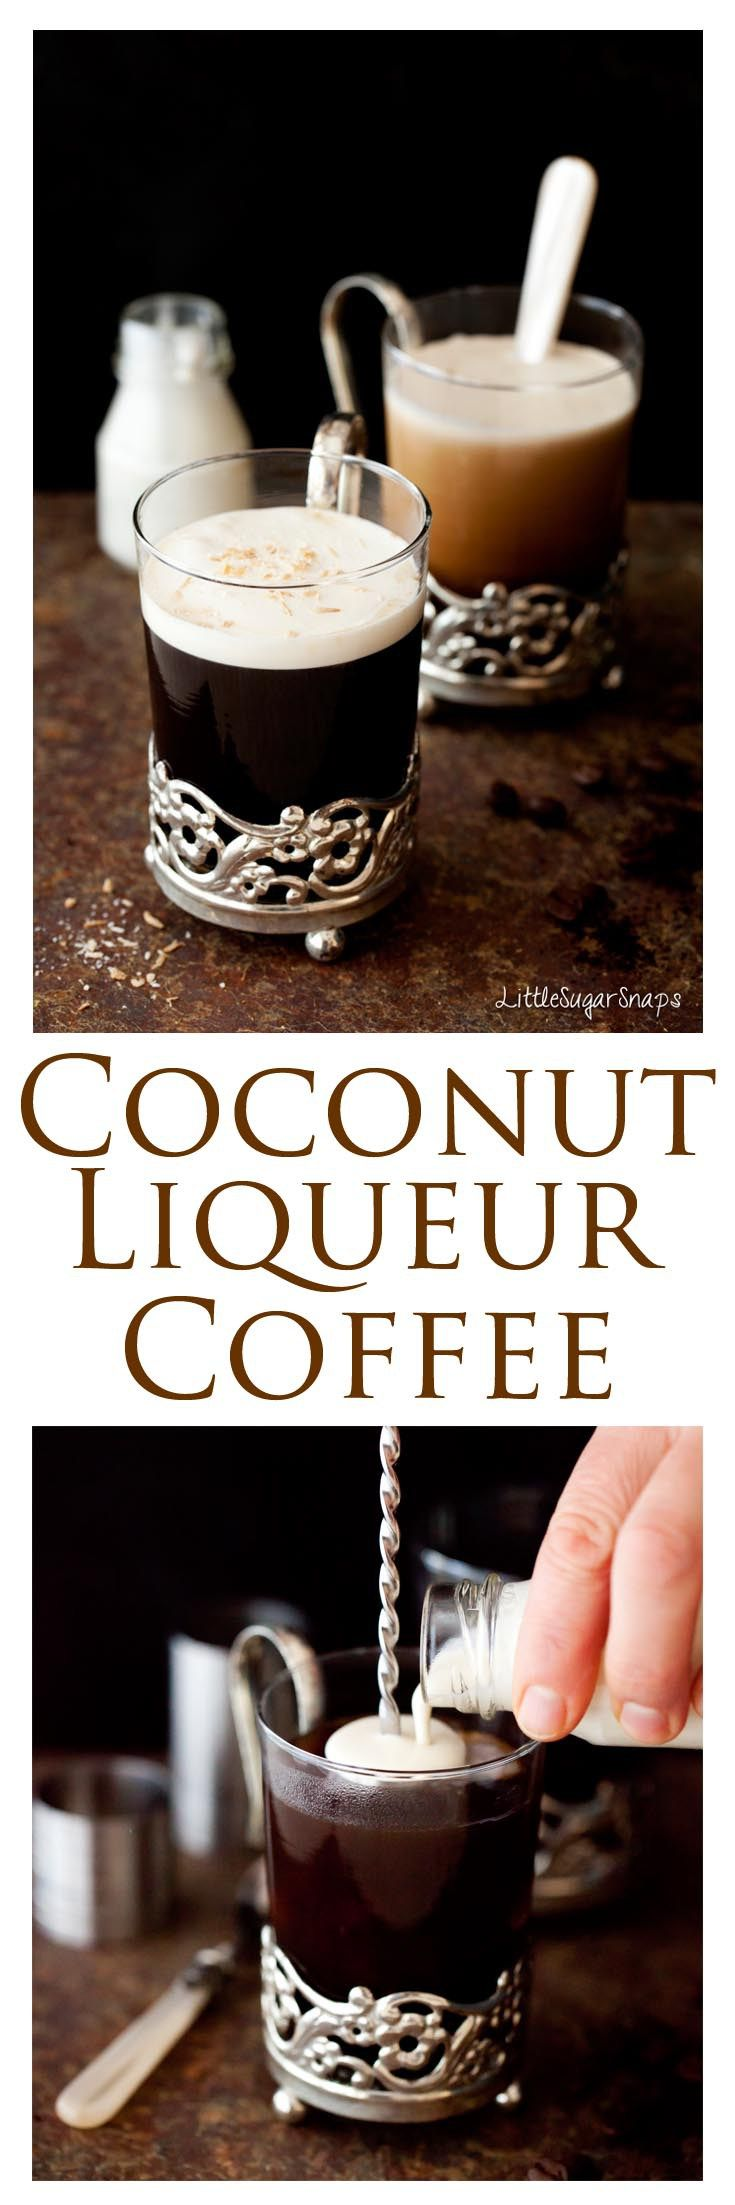 Coconut Liqueur Coffee: Coffee and coconut combine is this exotic hot drink. Fill your kitchen with intoxicating coffee aromas and snuggle up with a glass on any winters night. Quick and easy to prepare.